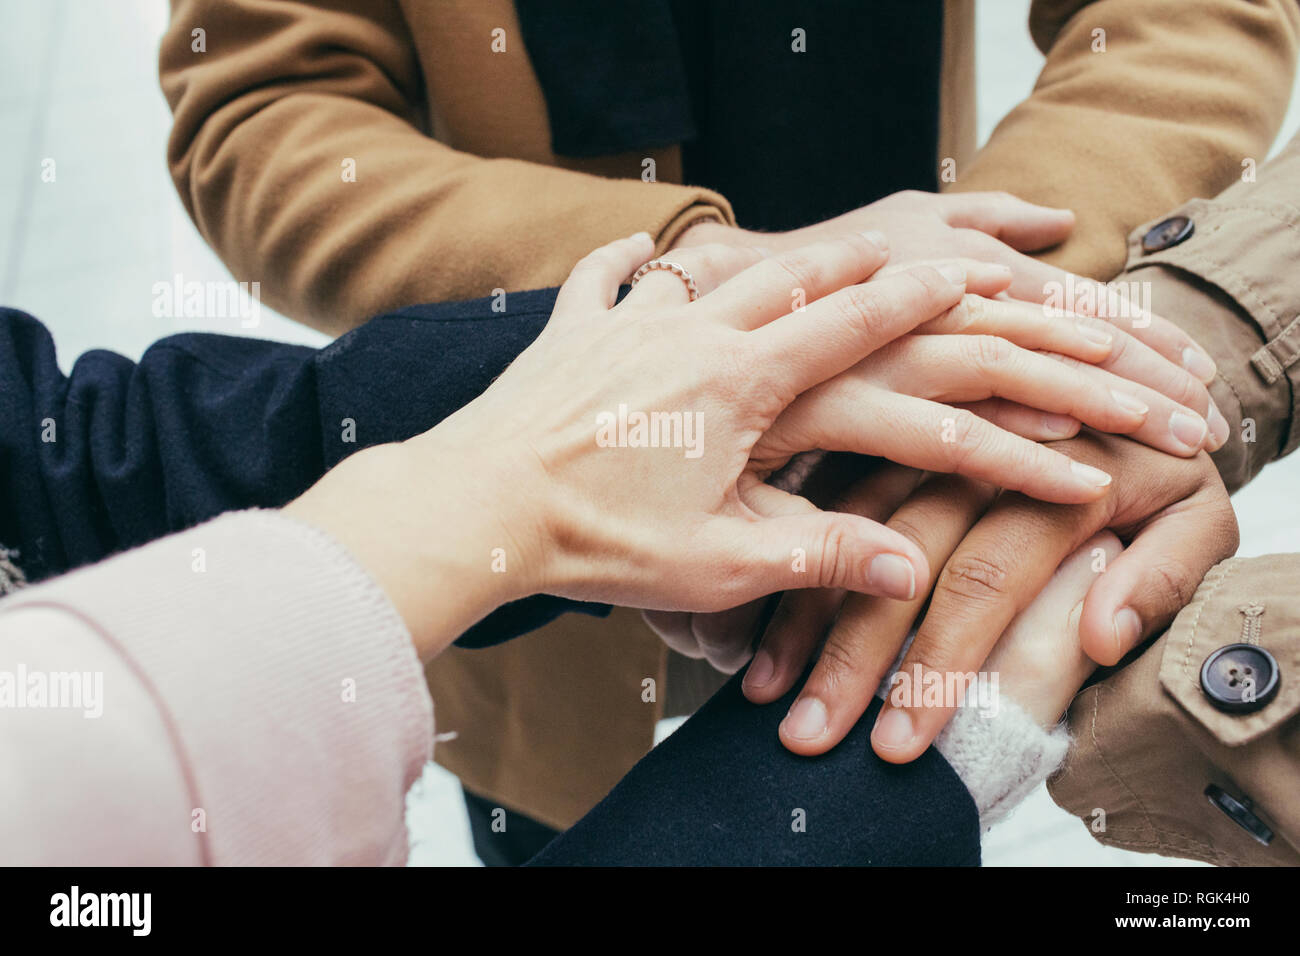 Group of friends putting hands together - Stock Image